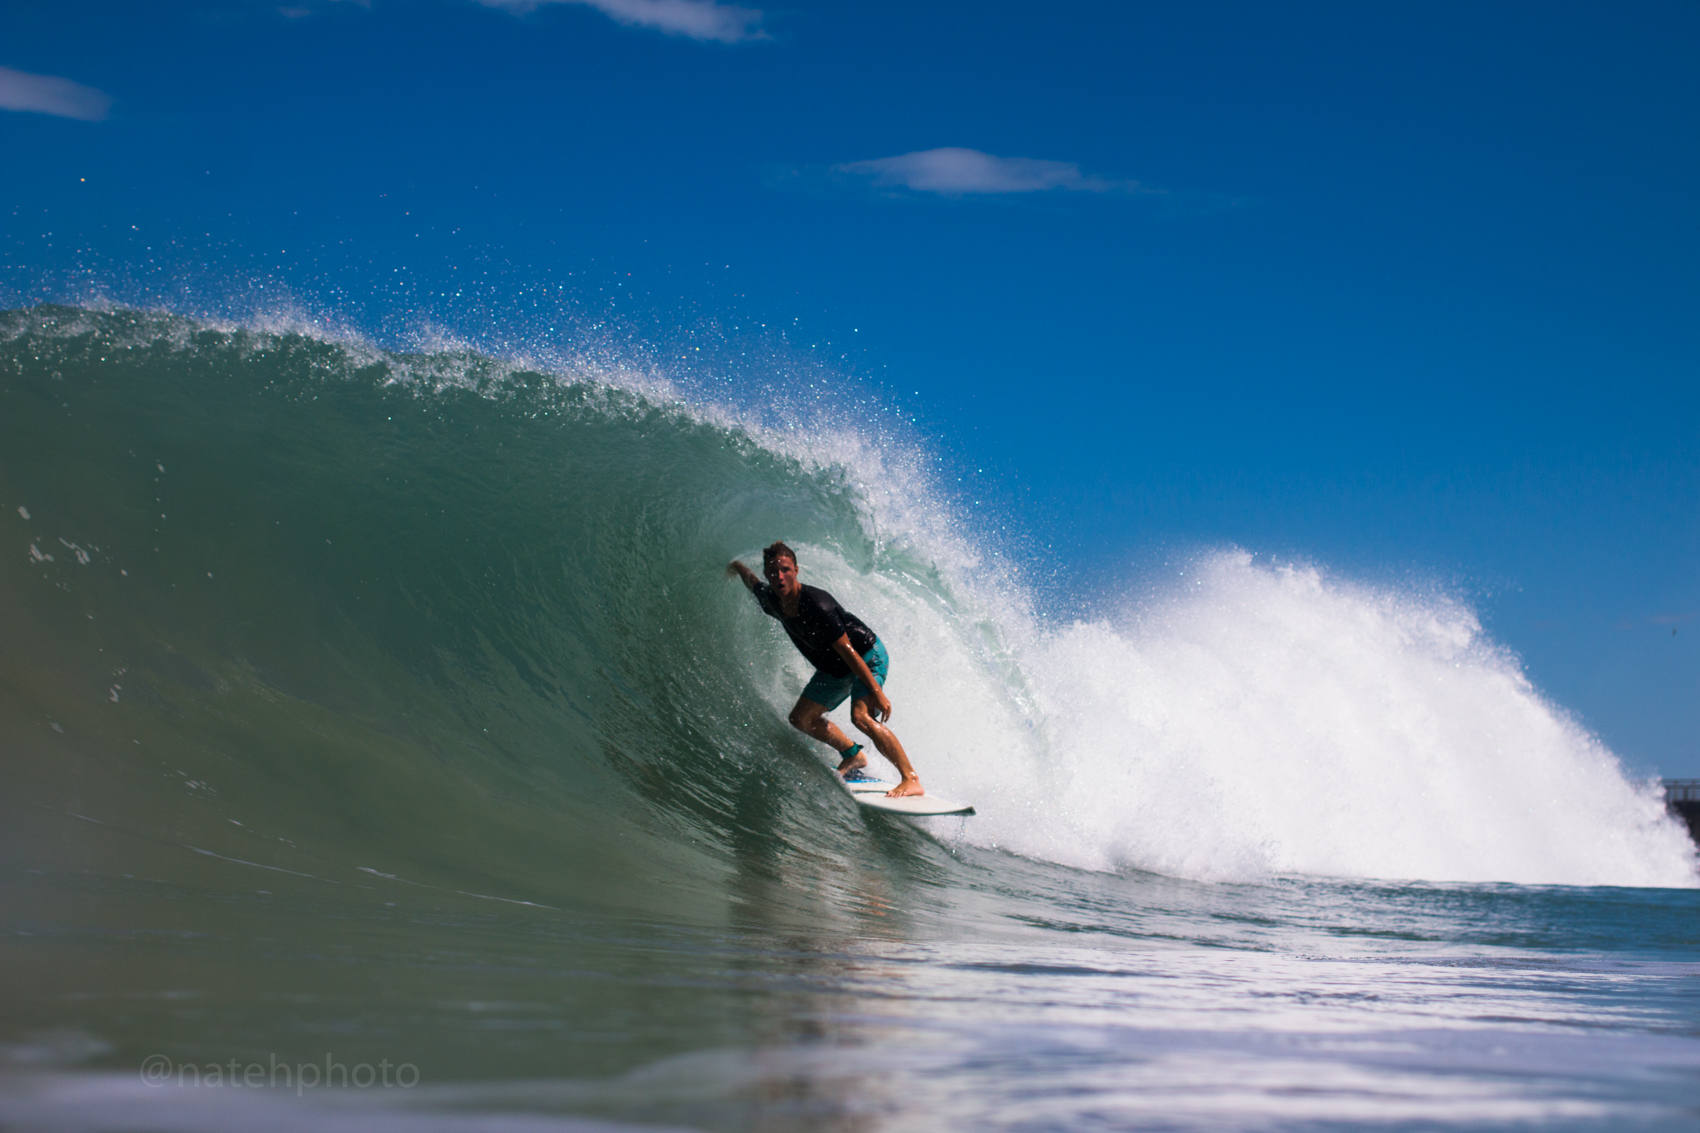 Chauncey Robinson Surfing at Sebastian Inlet, Photography by Nathaniel Harrington